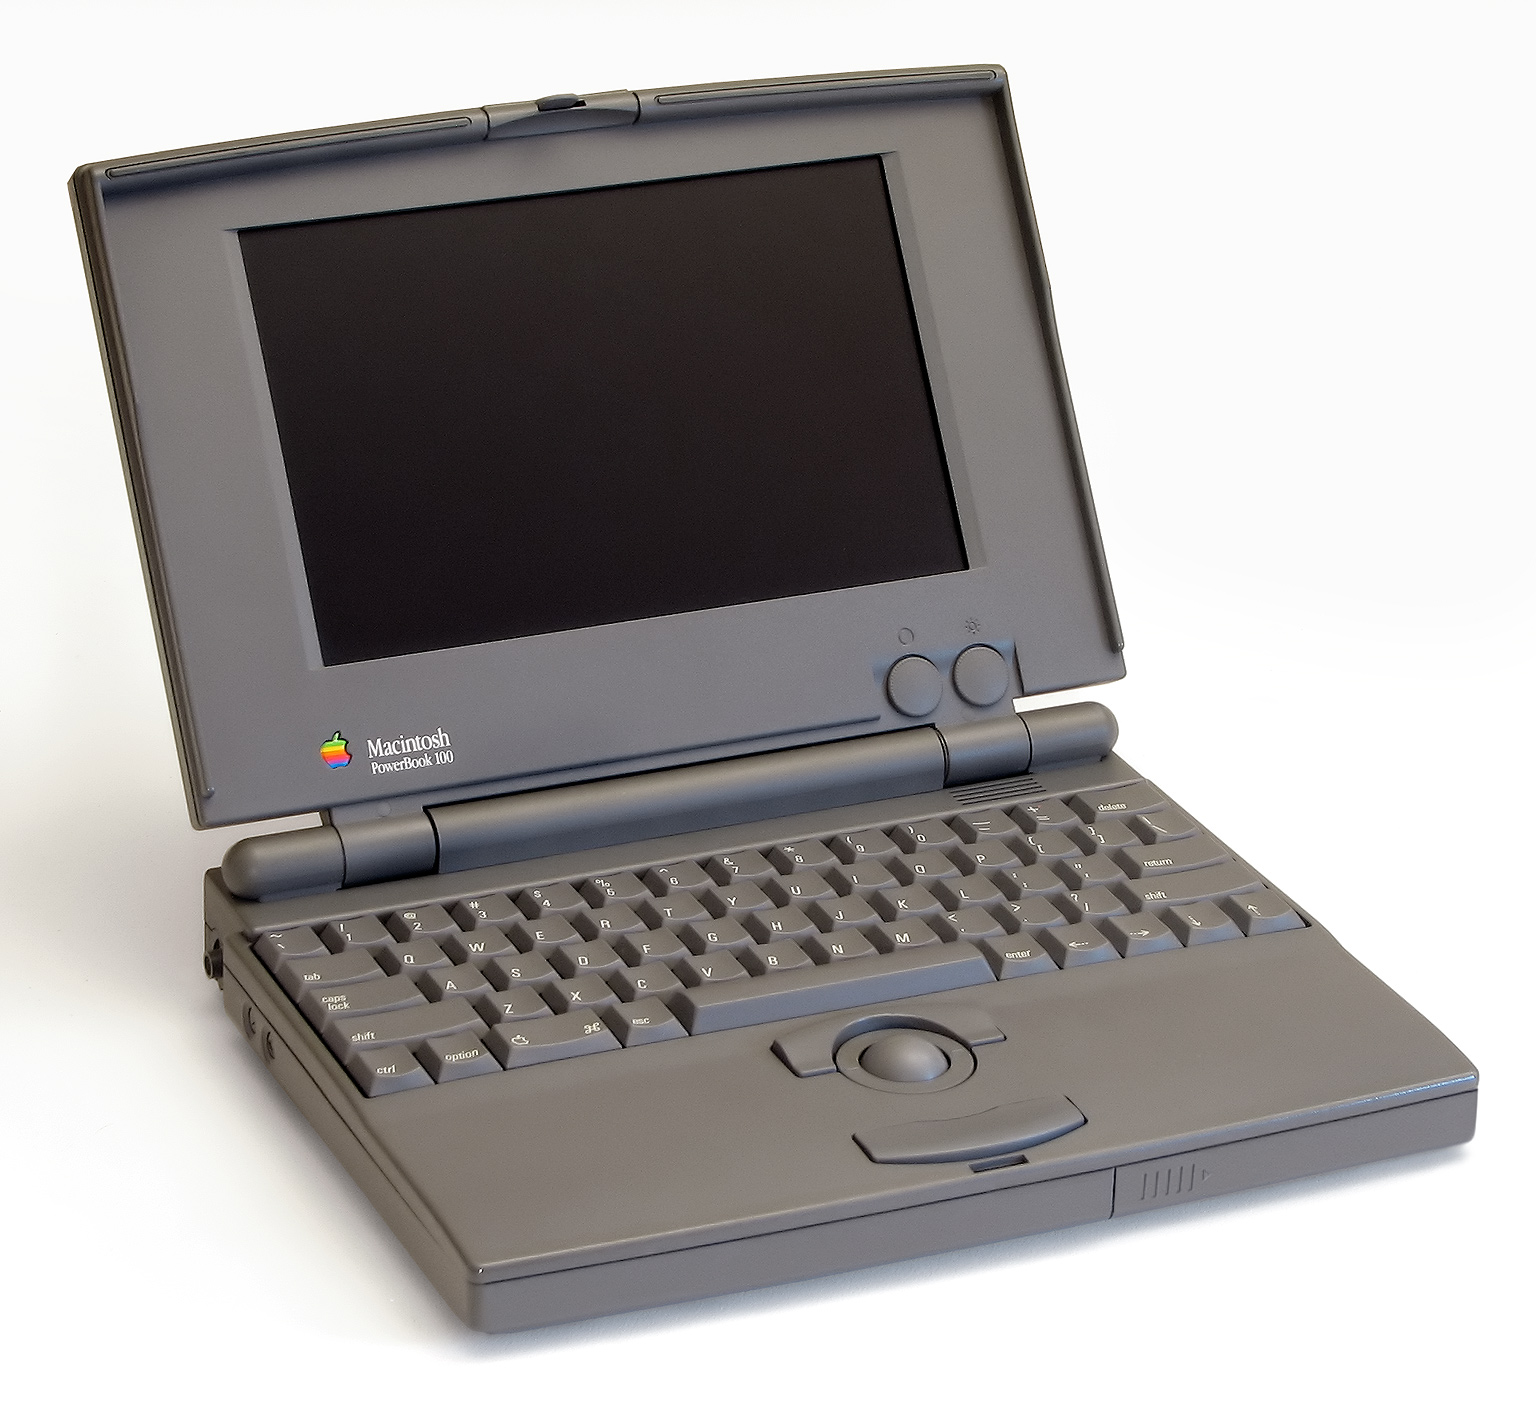 mac laptops - photo #44